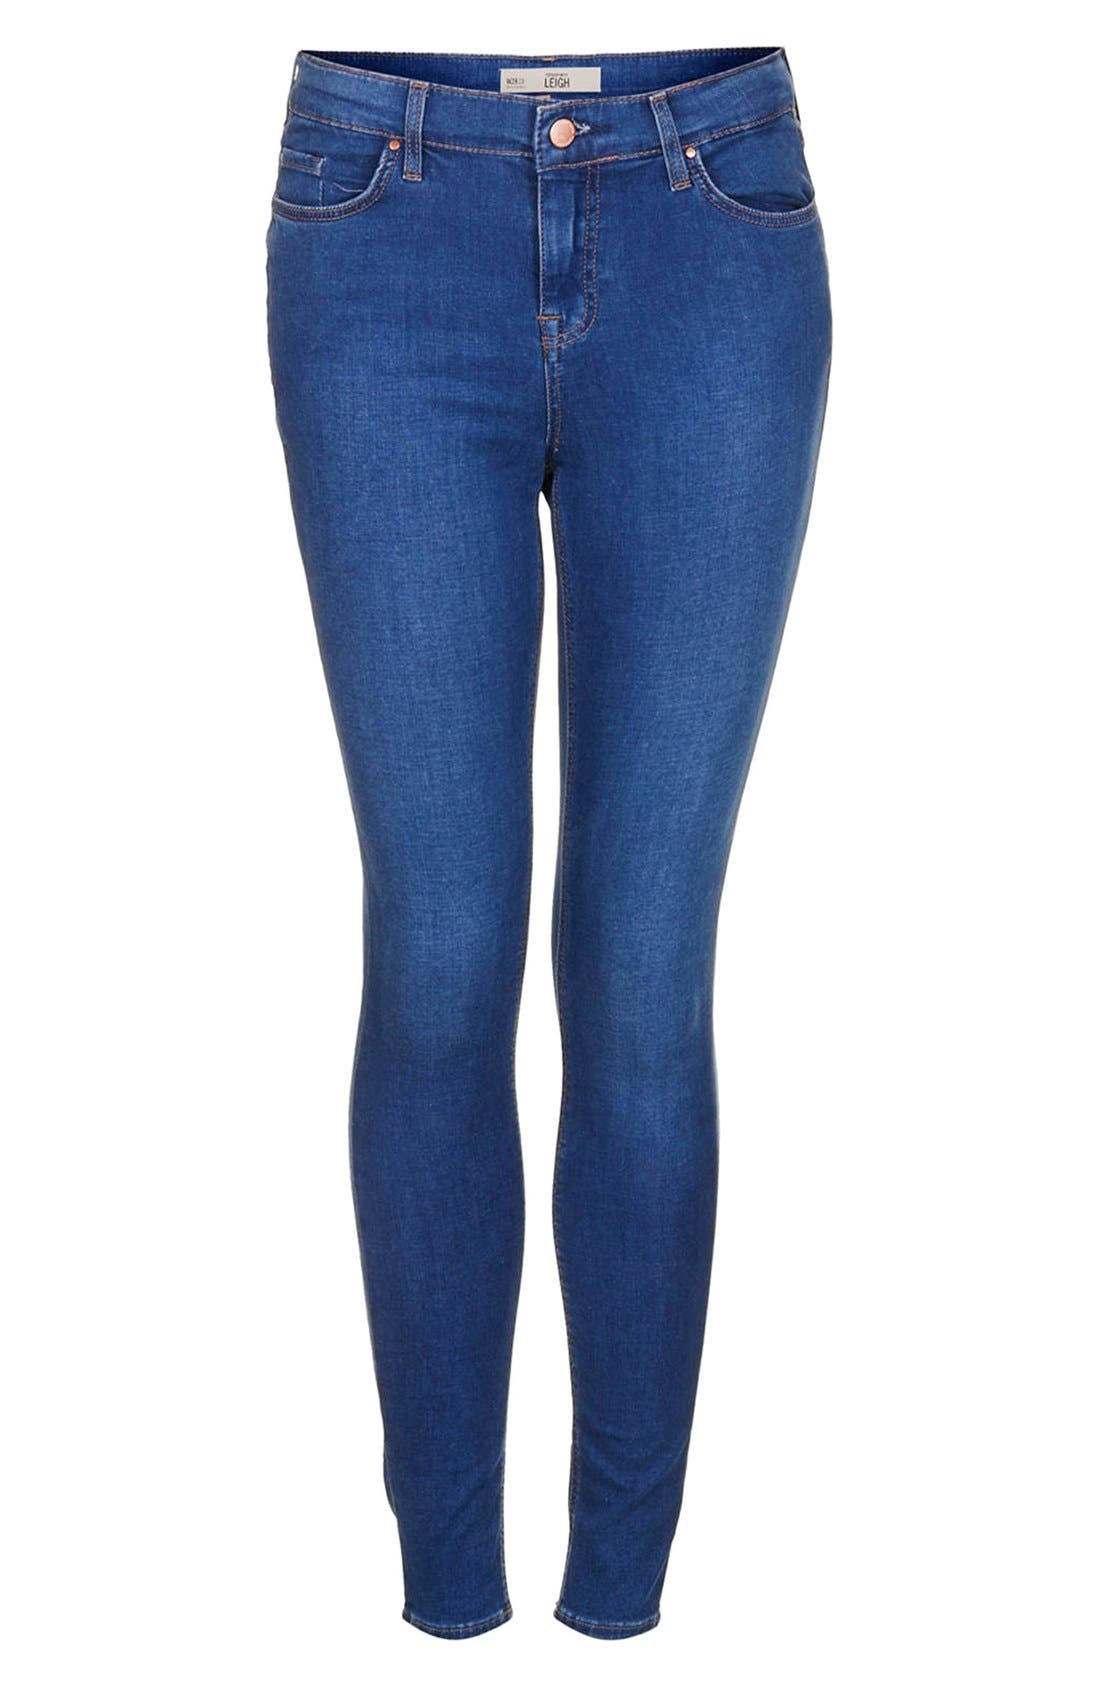 Alternate Image 3  - Topshop 'Leigh' Ankle Skinny Jeans (Mid Denim)